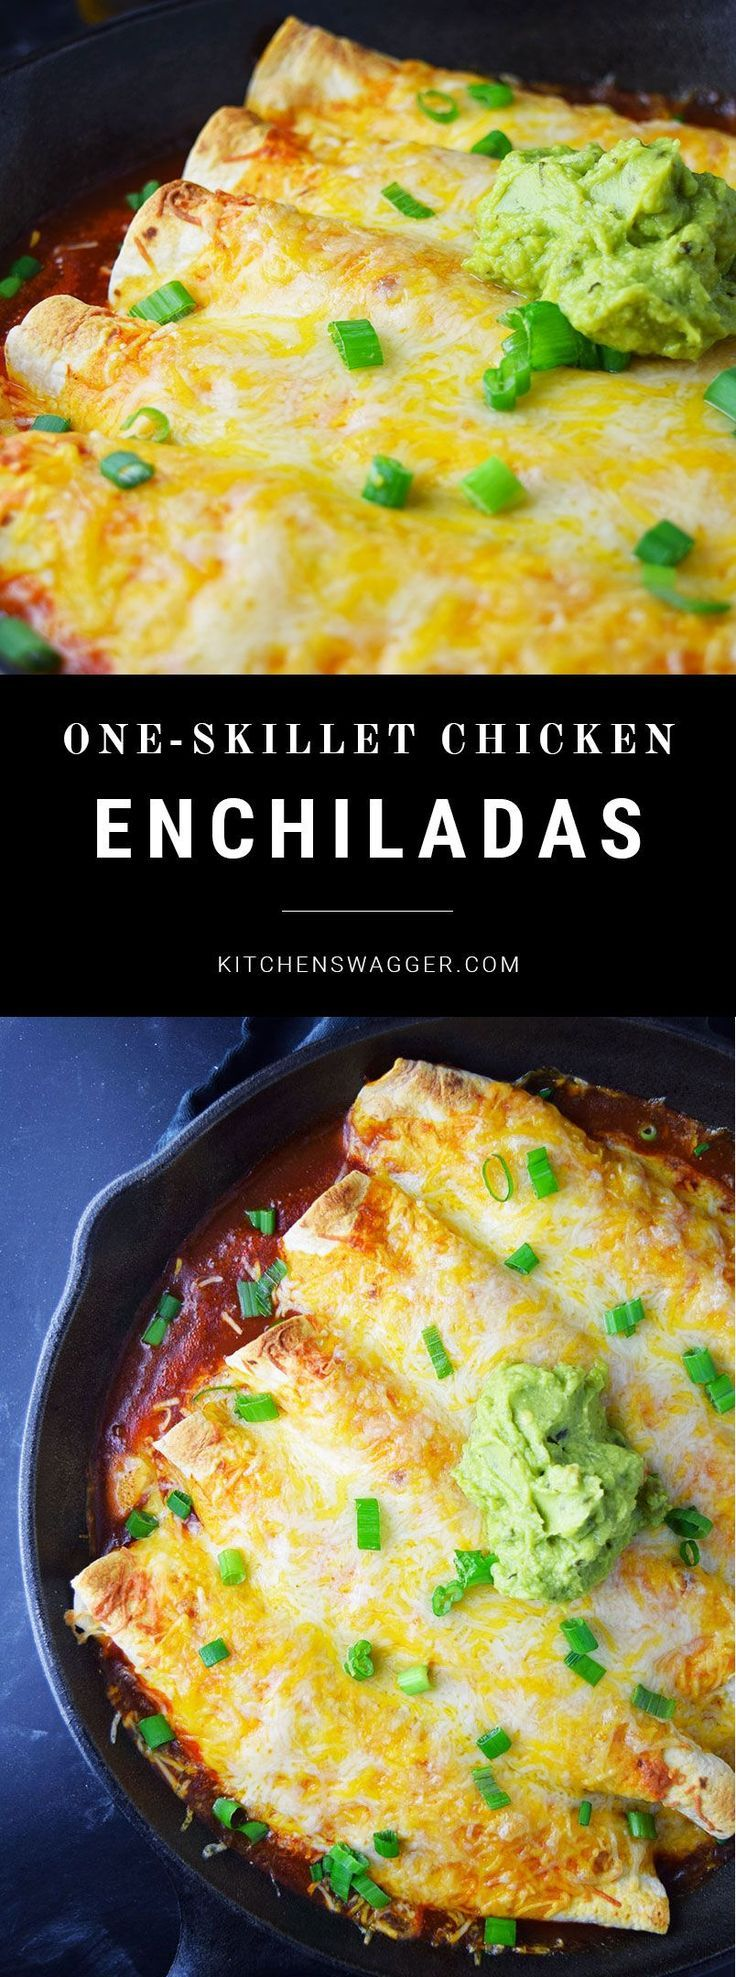 Skillet Chicken Enchiladas Recipe | Kitchen Swagger #skilletrecipes